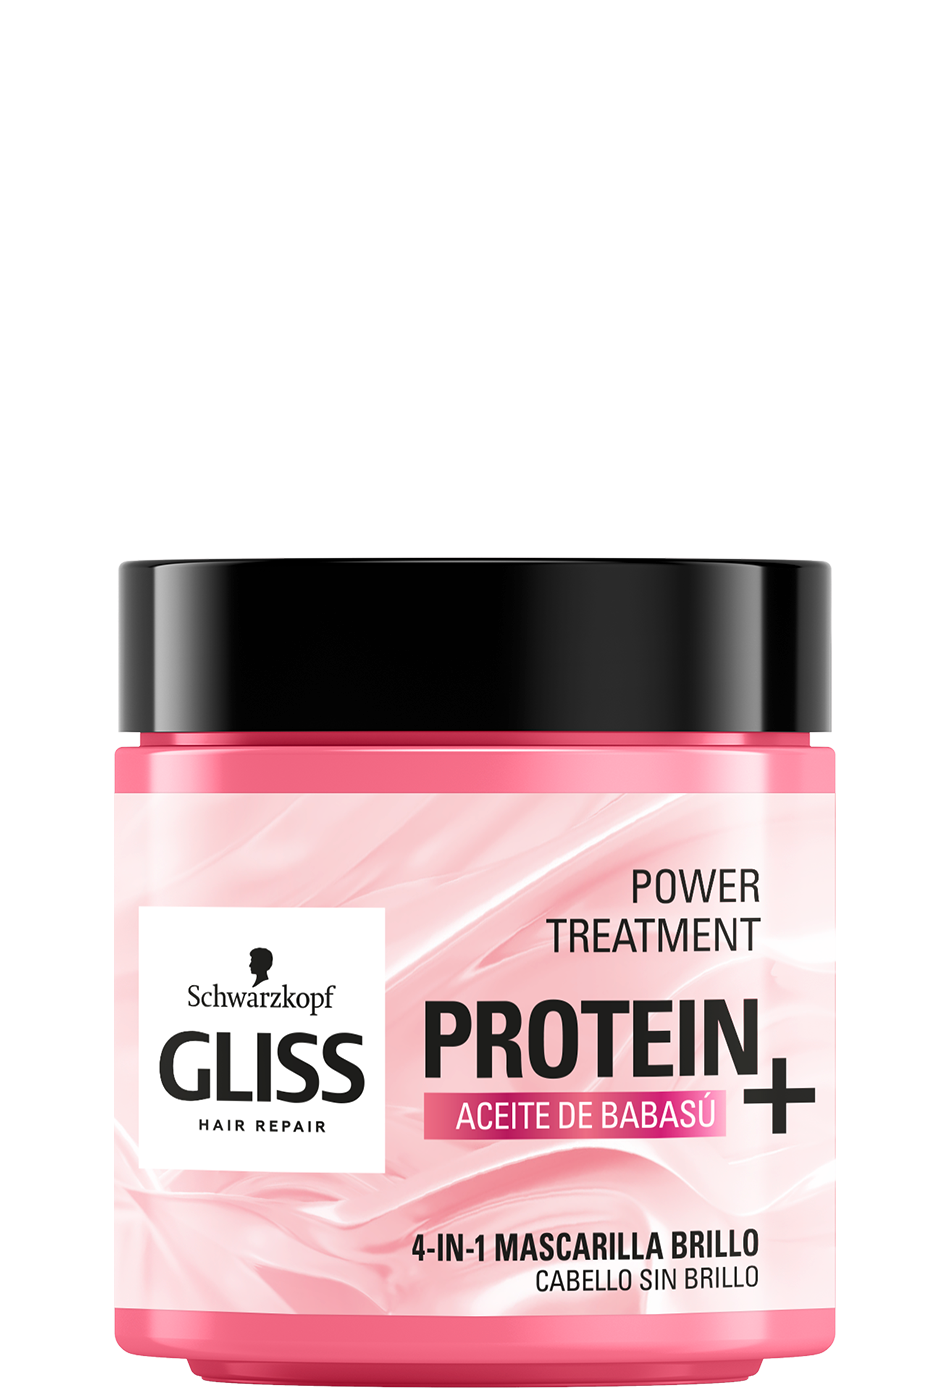 Gliss_Relaunch_2020_0020_GLISS20_ES_Protein_Jar_400ml_Babassu_front